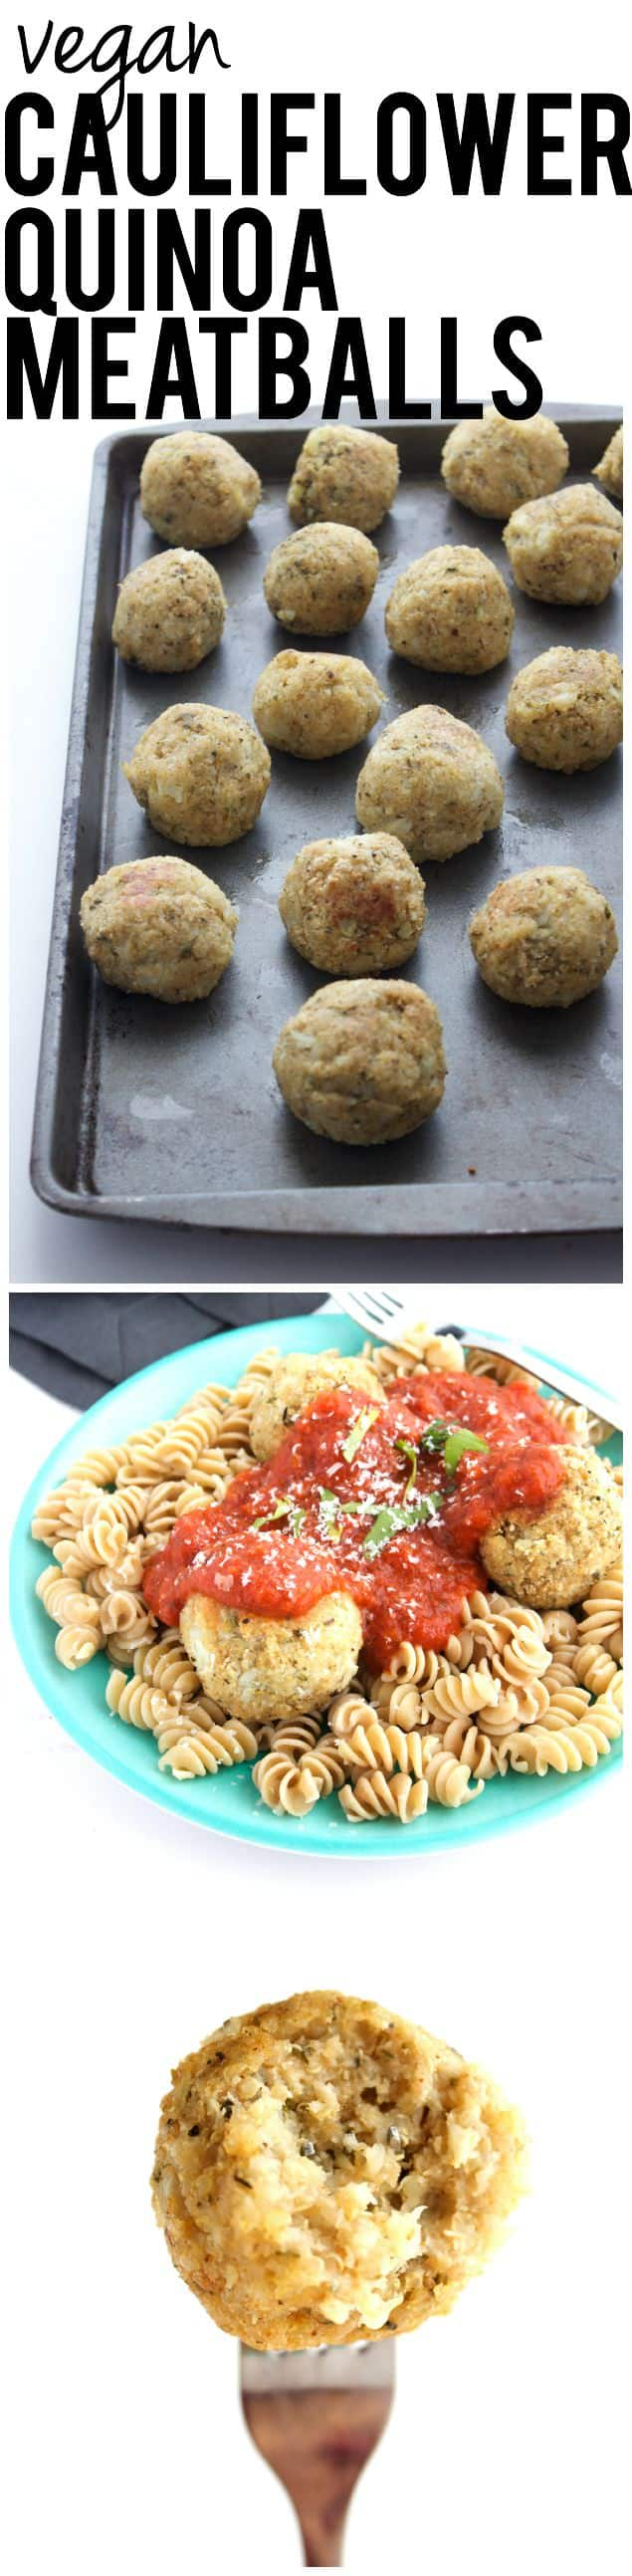 Vegan Cauliflower Quinoa Meatballs 456